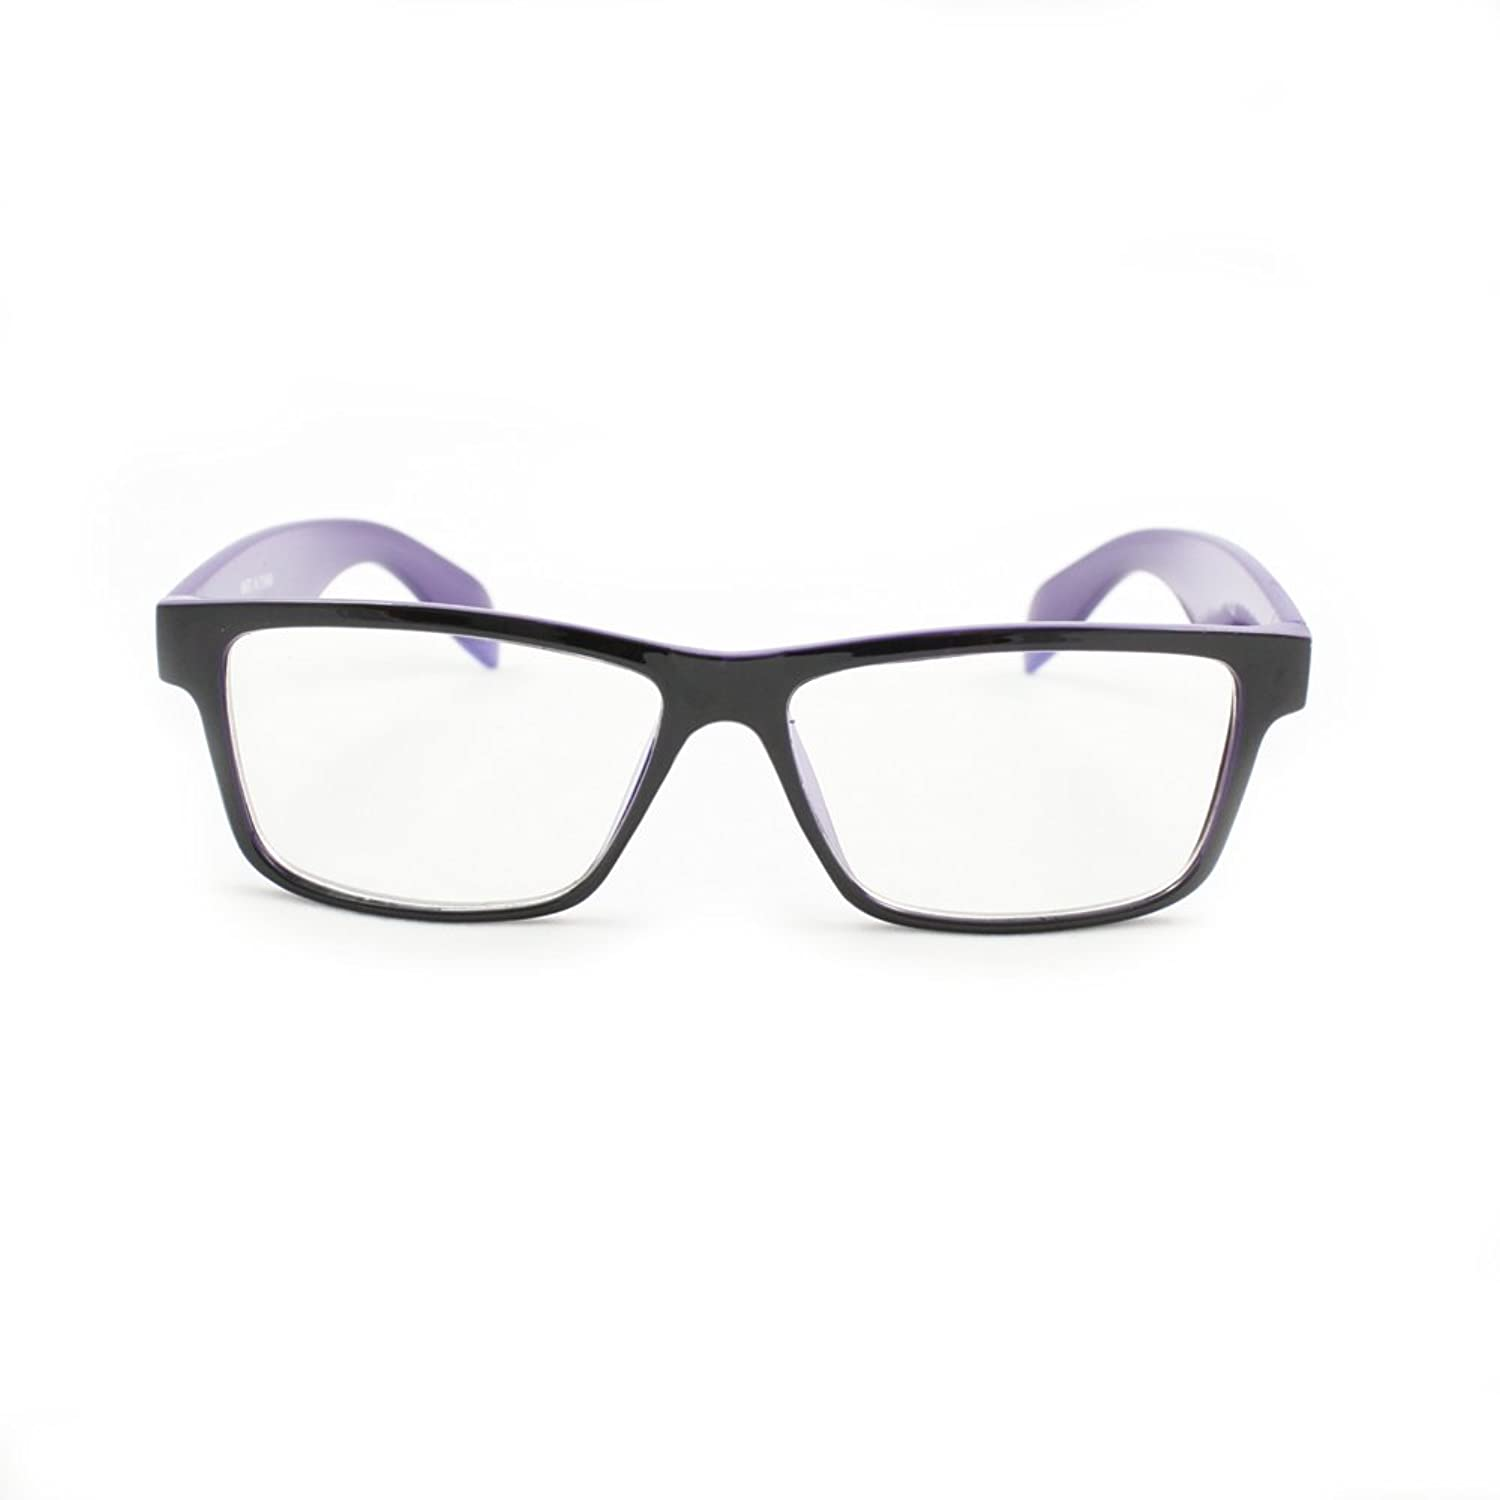 MLC Eyewear Rectangle Fashion Sunglasses P2133 Black with Purple Frame Clear Lens for Women and Men (can be optical frame)